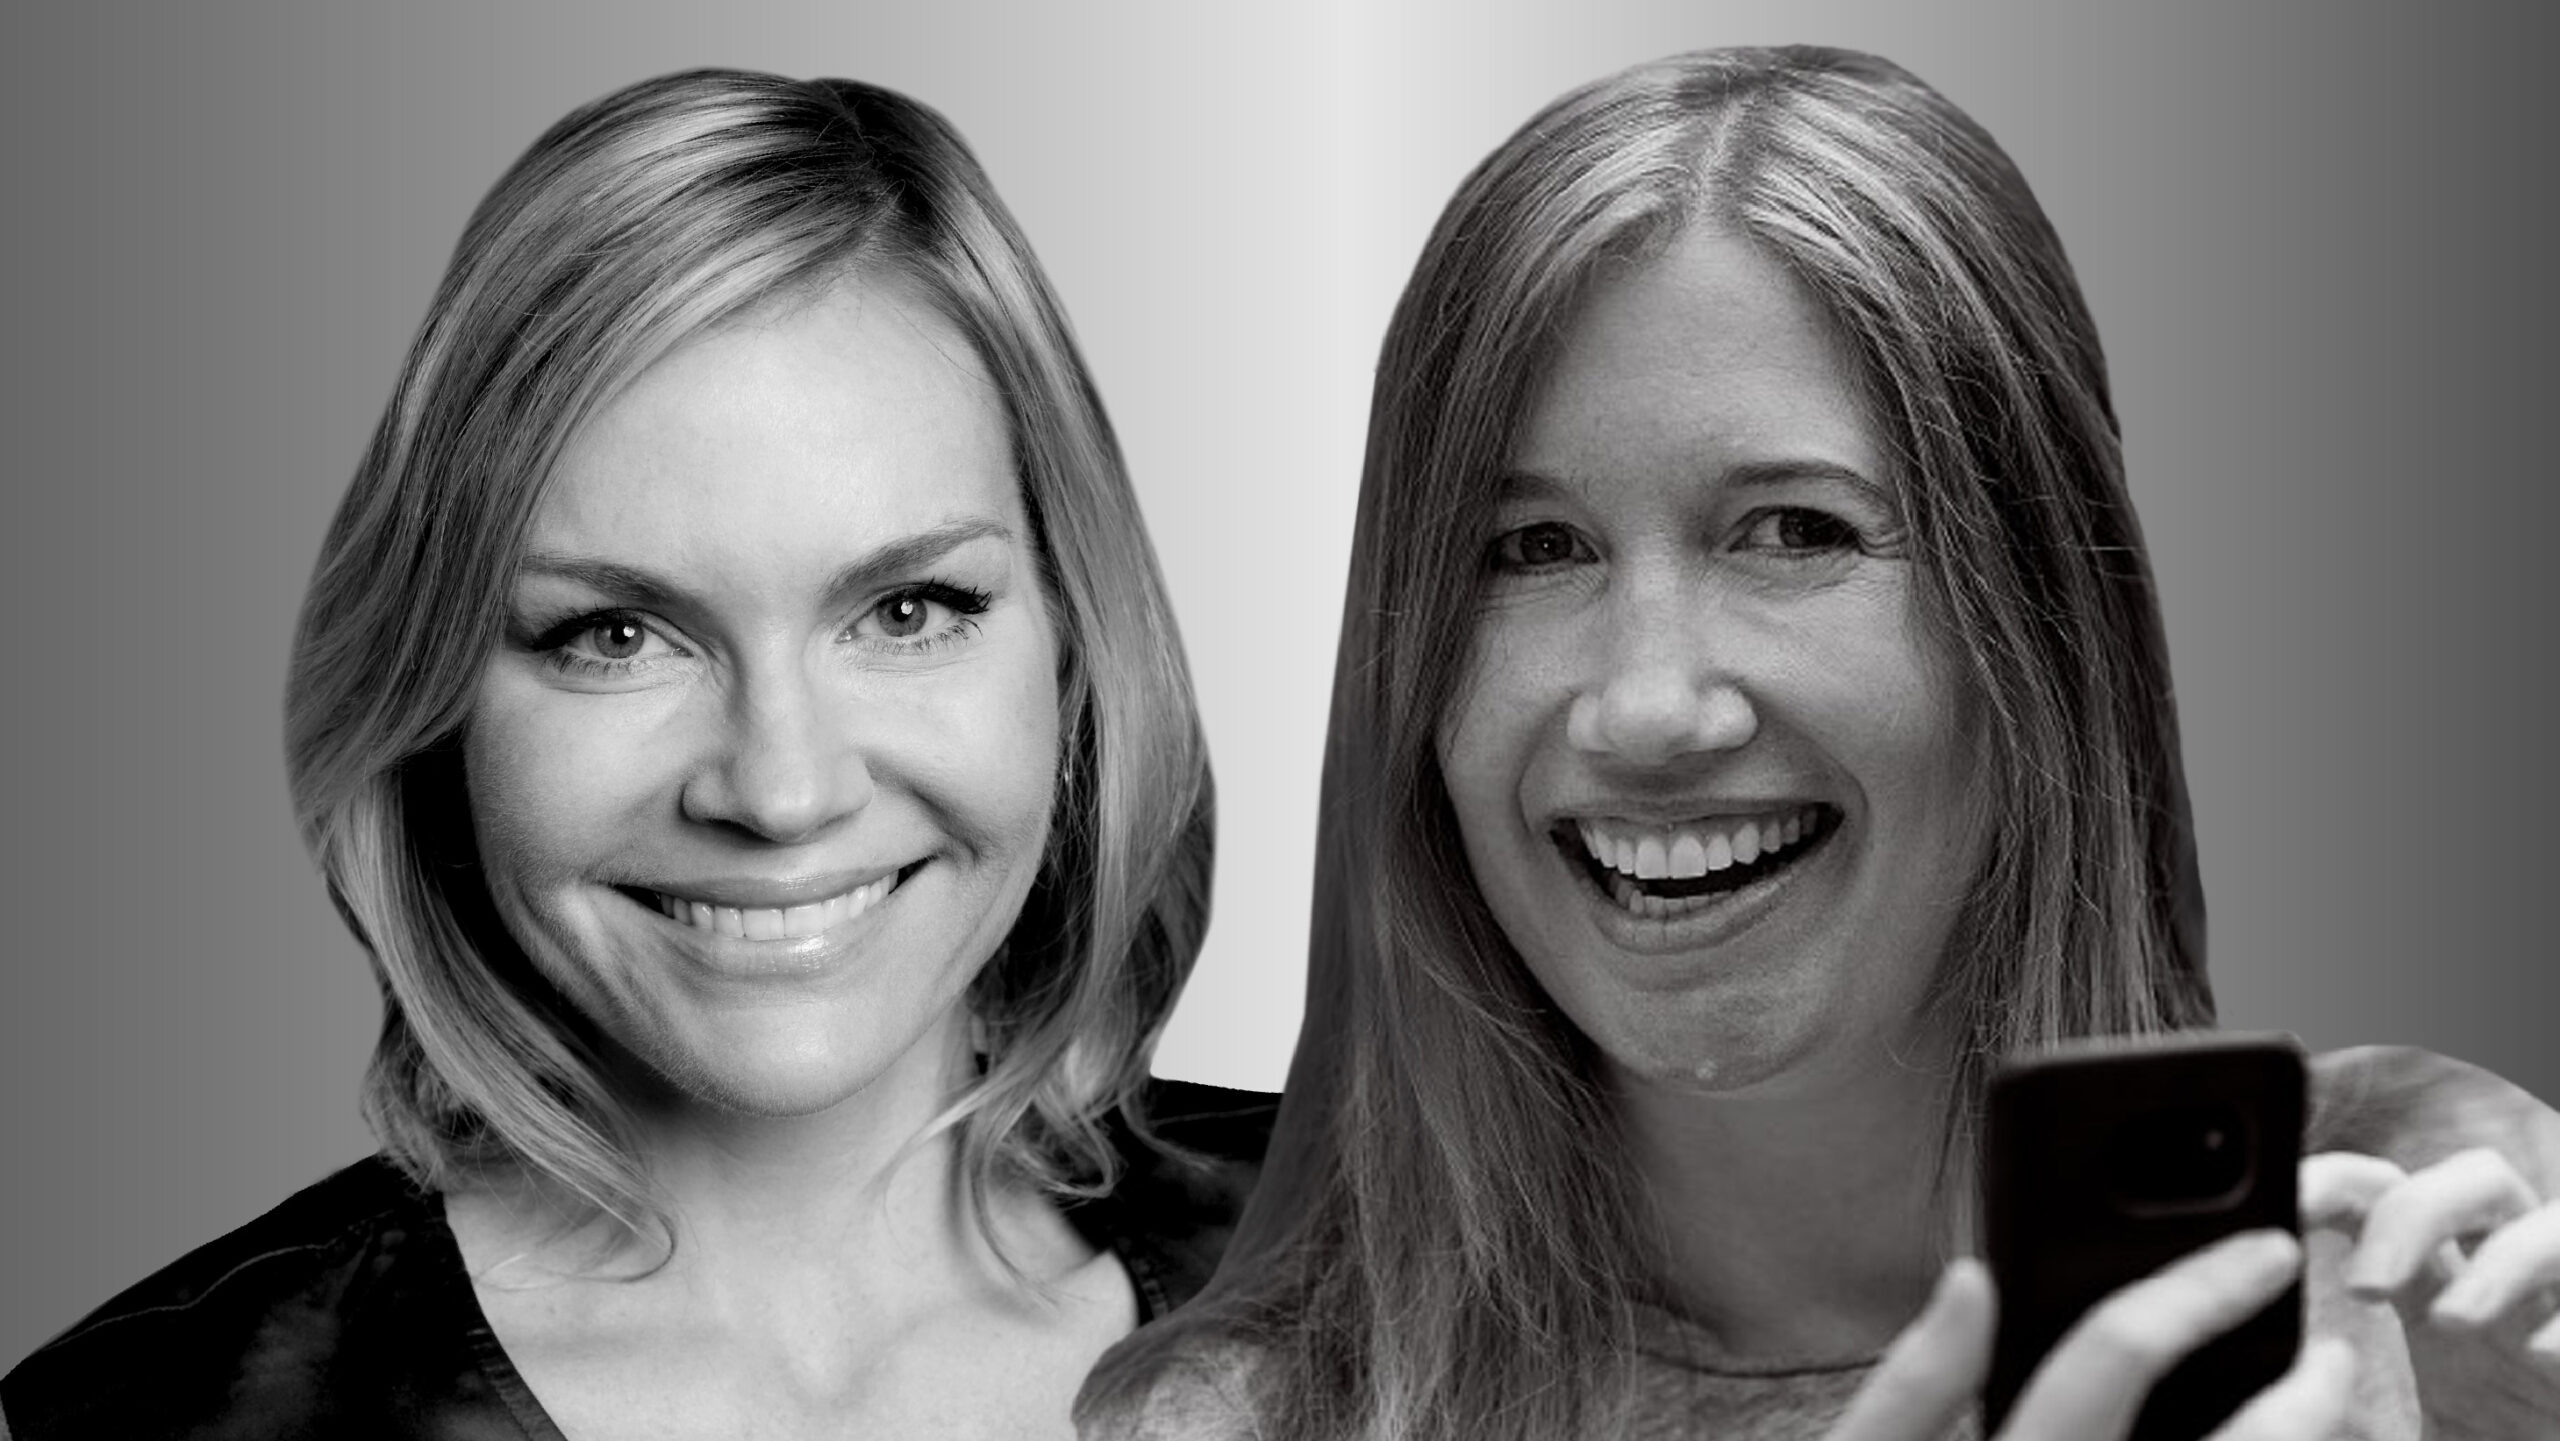 Portraits of Microsoft researchers Ginger Hudson and Jaime Teevan photographed in black and white. Both smile and look forward. Teevan, on the right, is holding a cell phone in the lower right of the frame.